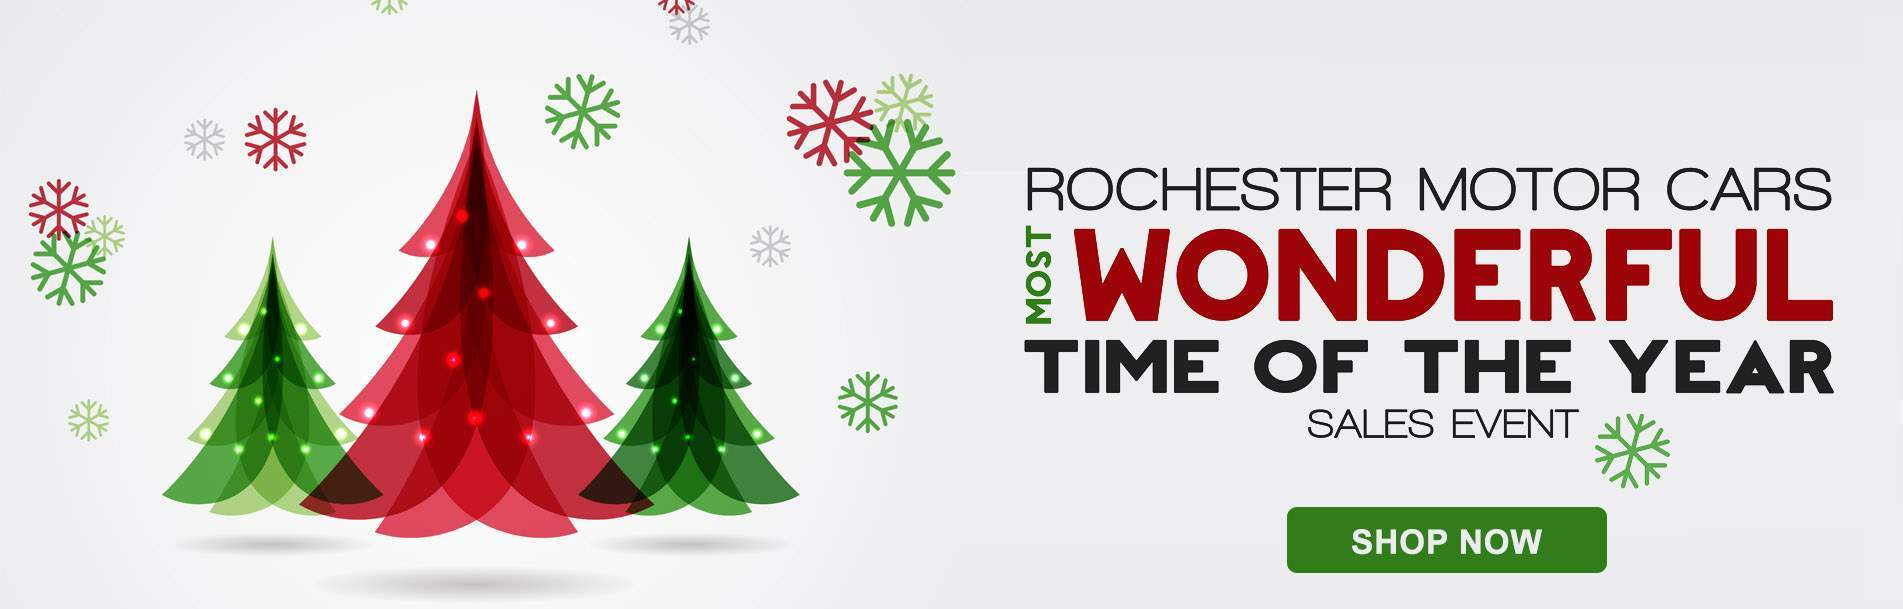 Rochester Motor Cars Most Wonderful Time of the Year Event